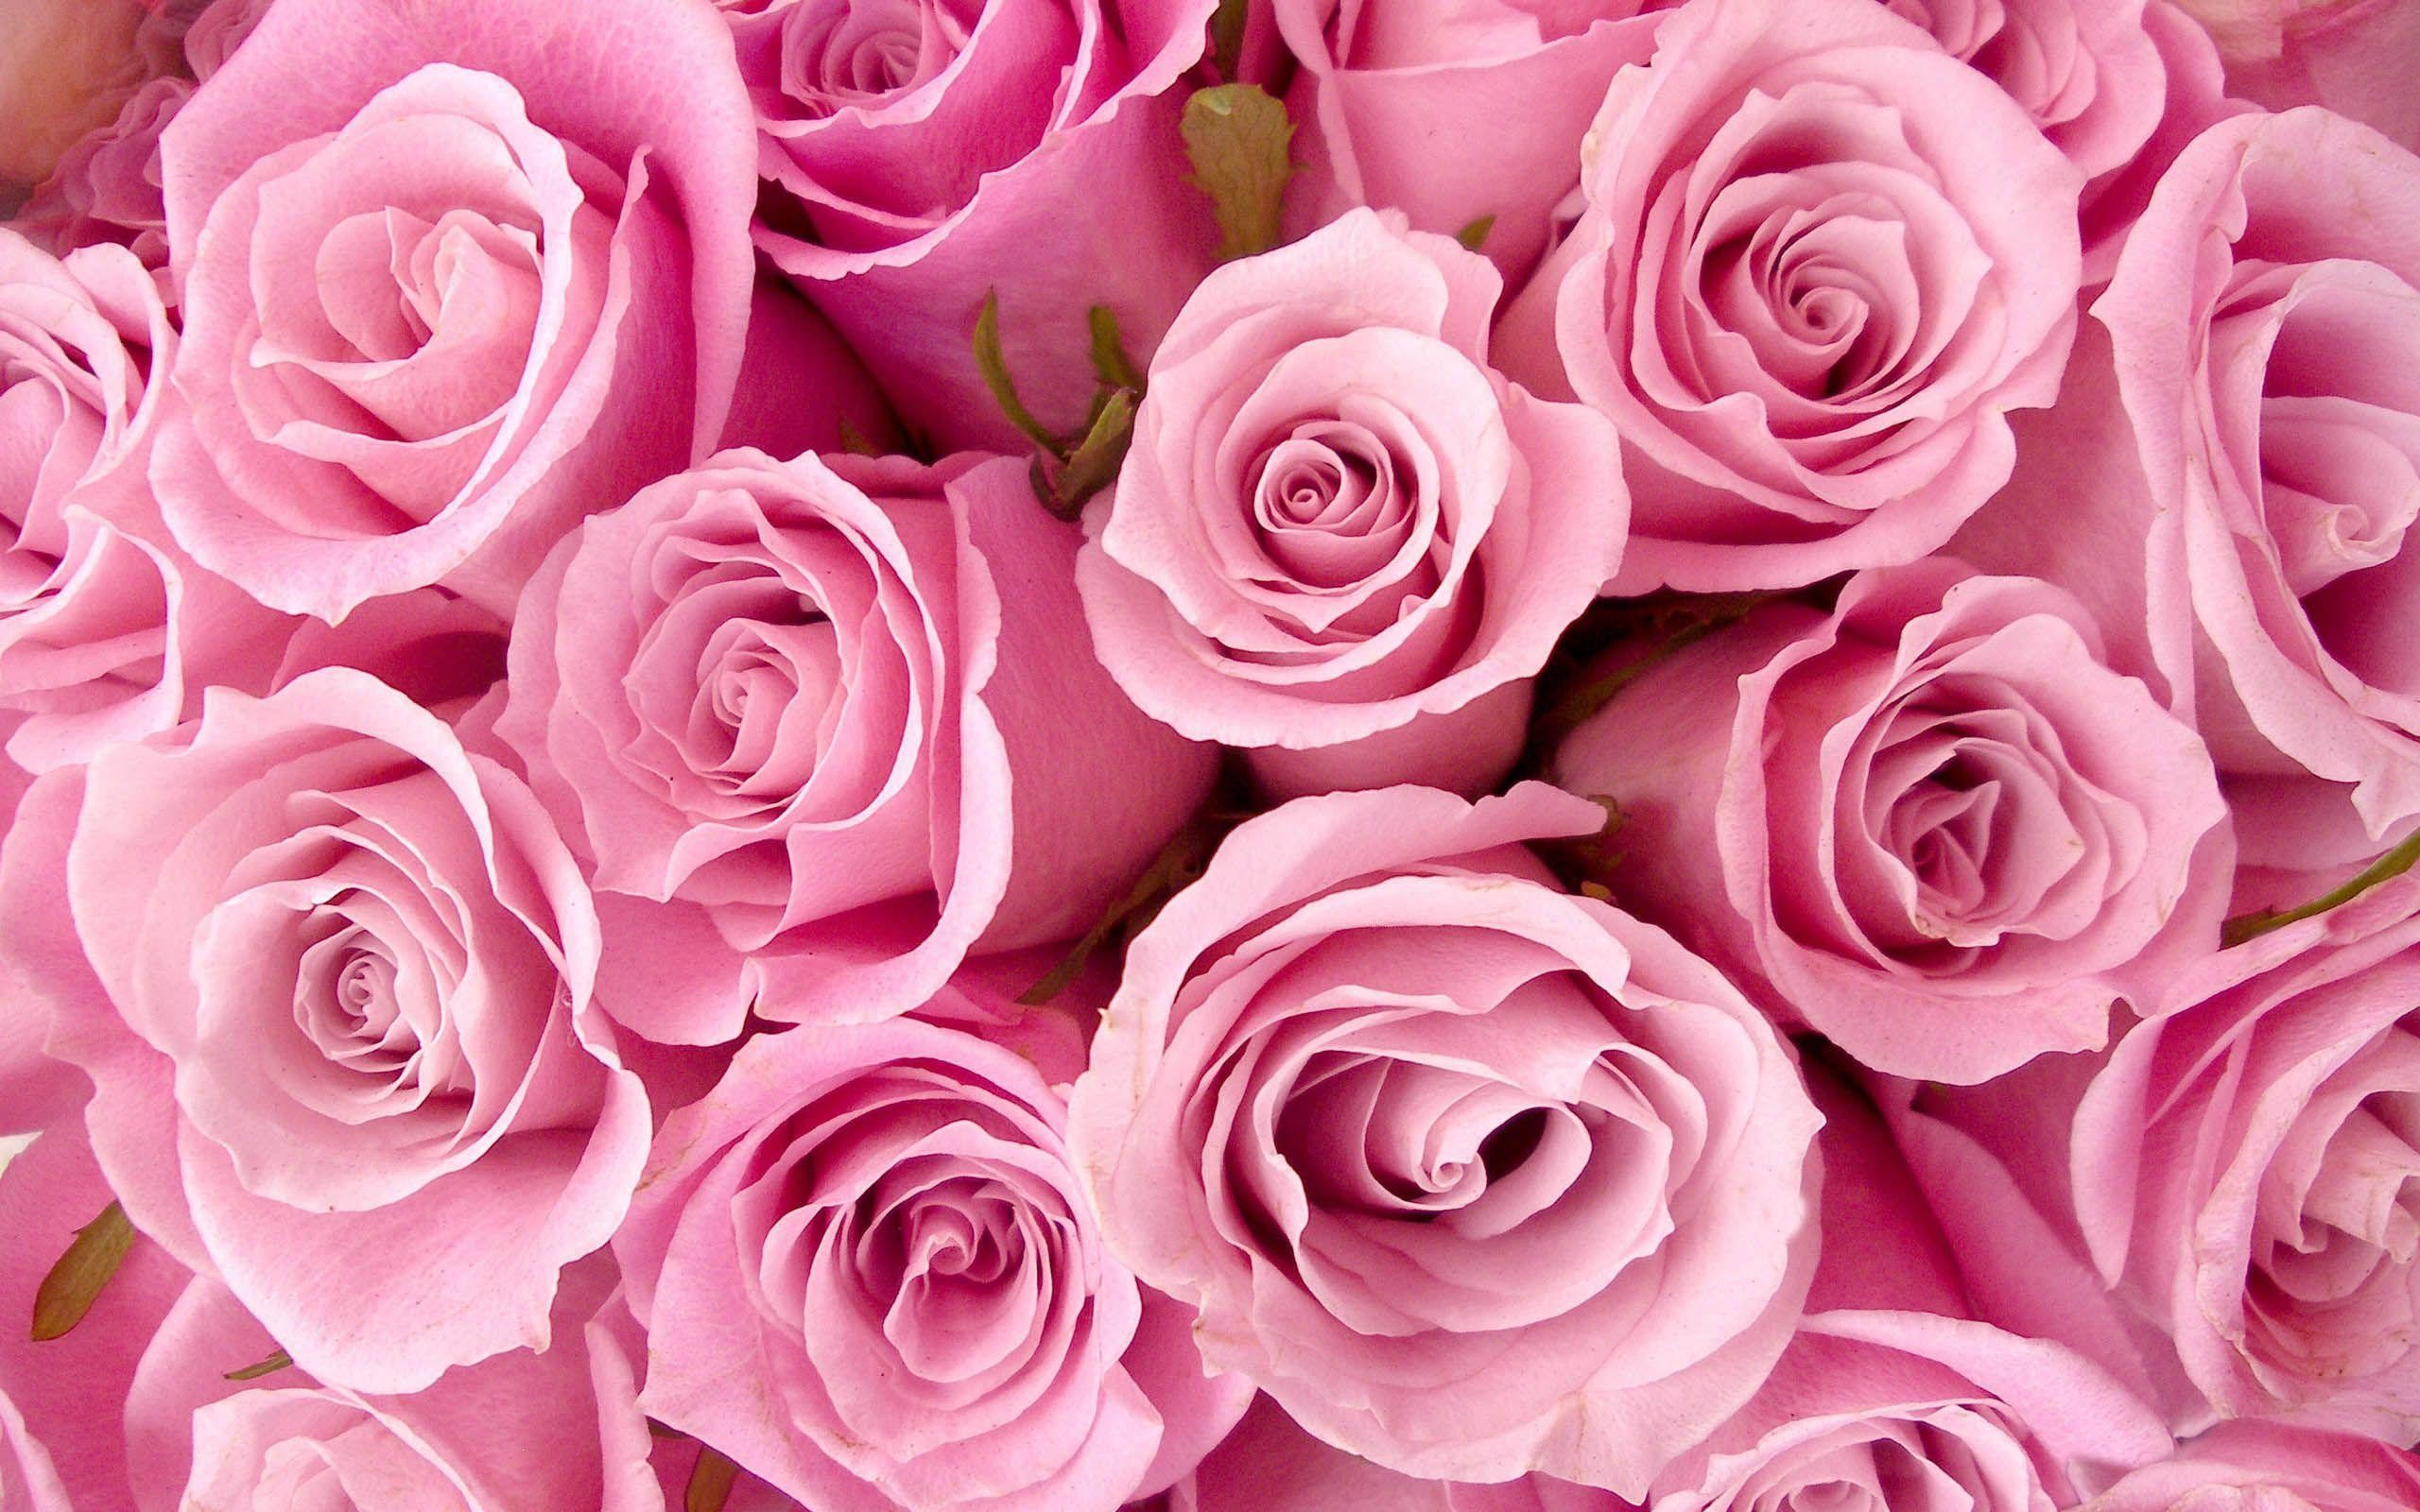 Pretty pink wallpapers 59 images 2560x1600 flowers astonishing pretty pink background hd wallpapers image mightylinksfo Gallery